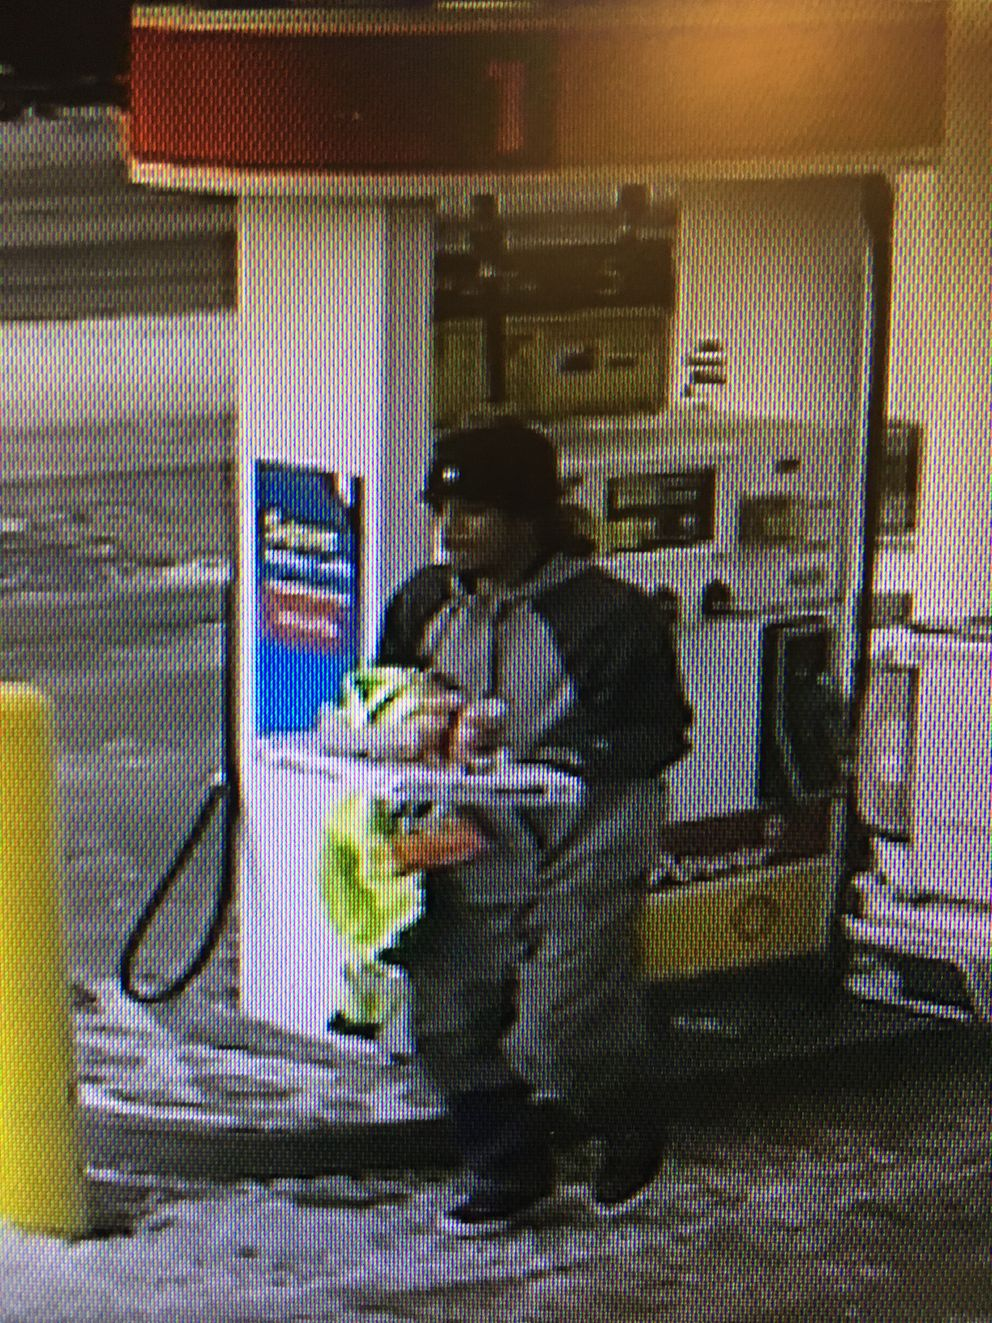 An image of the male suspect, believed to be armed (Anchorage Police Department)